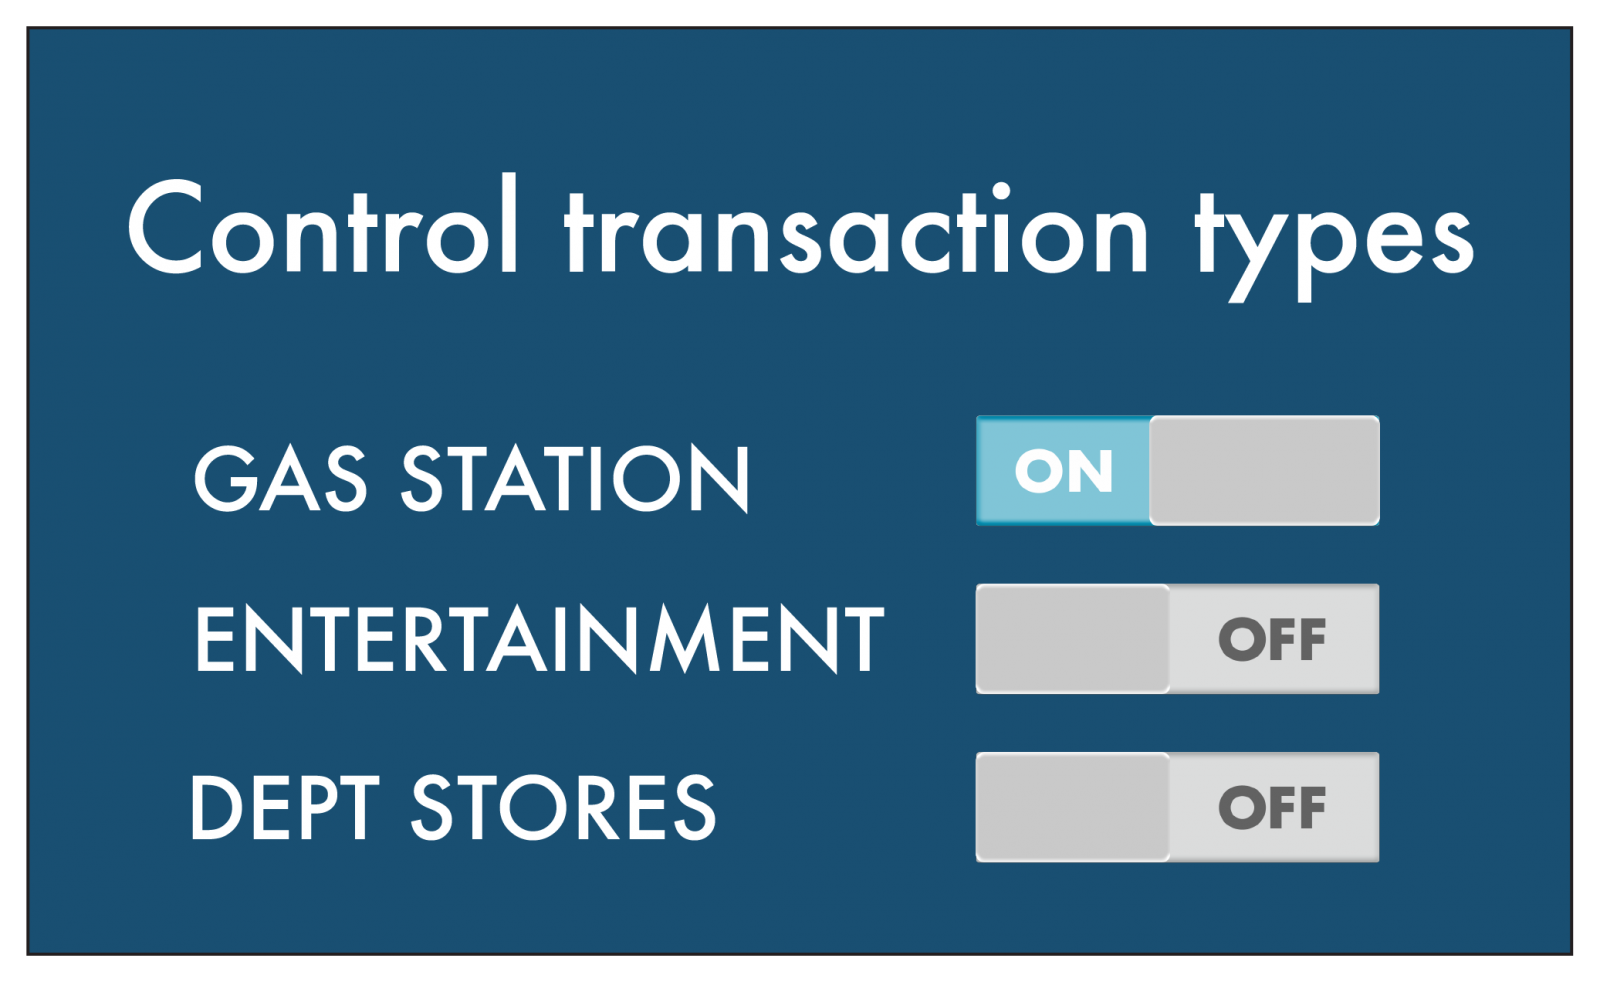 CONTROL INDEPENDANT TRANSACTIONS